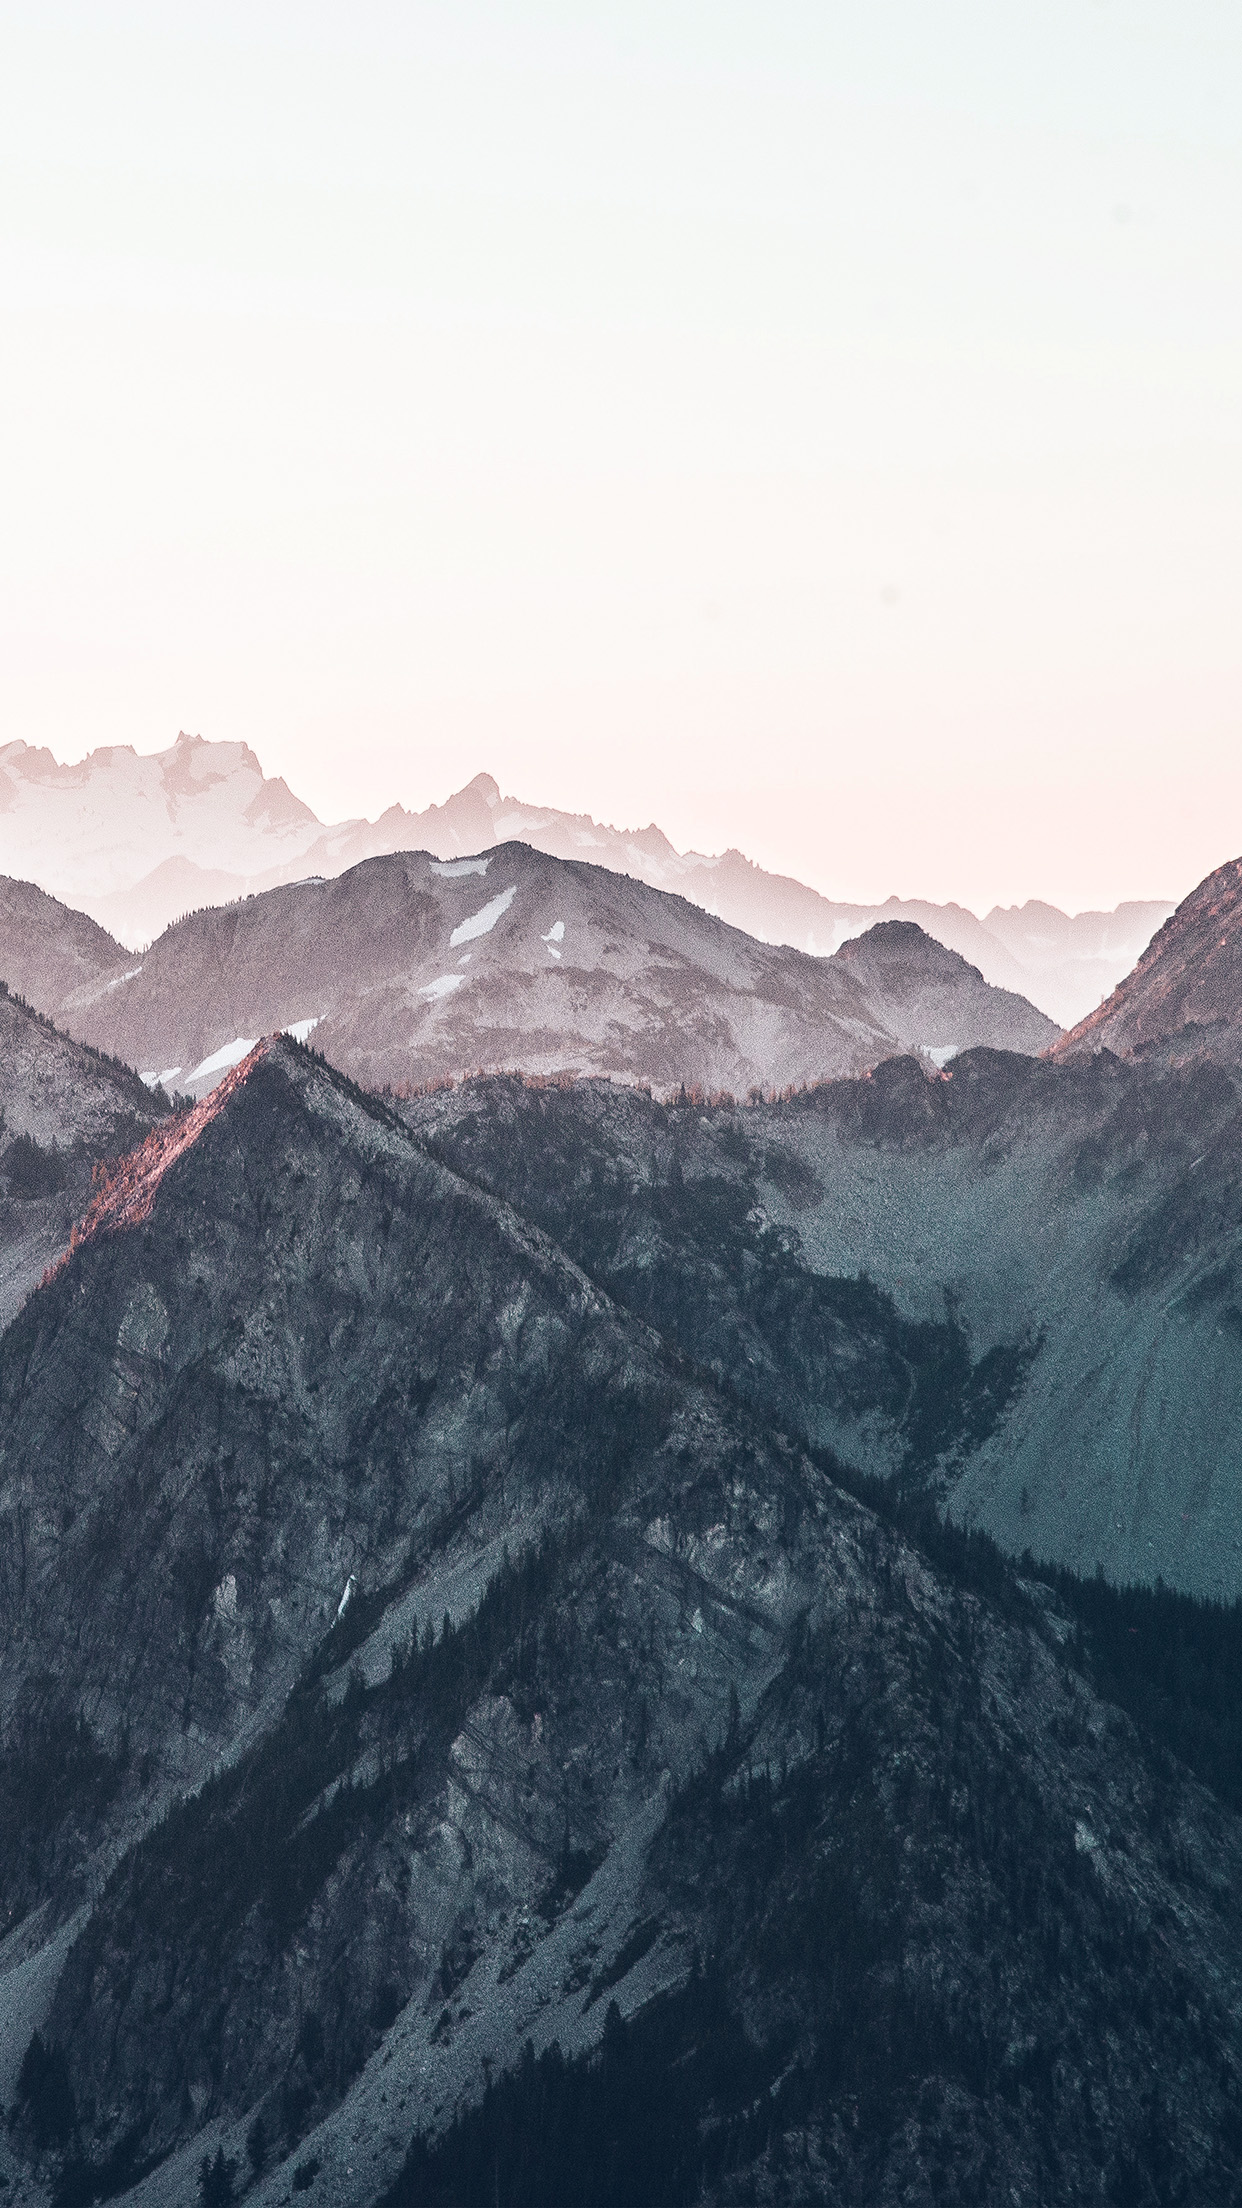 mt12-mountain-layer-view-nature-top ...